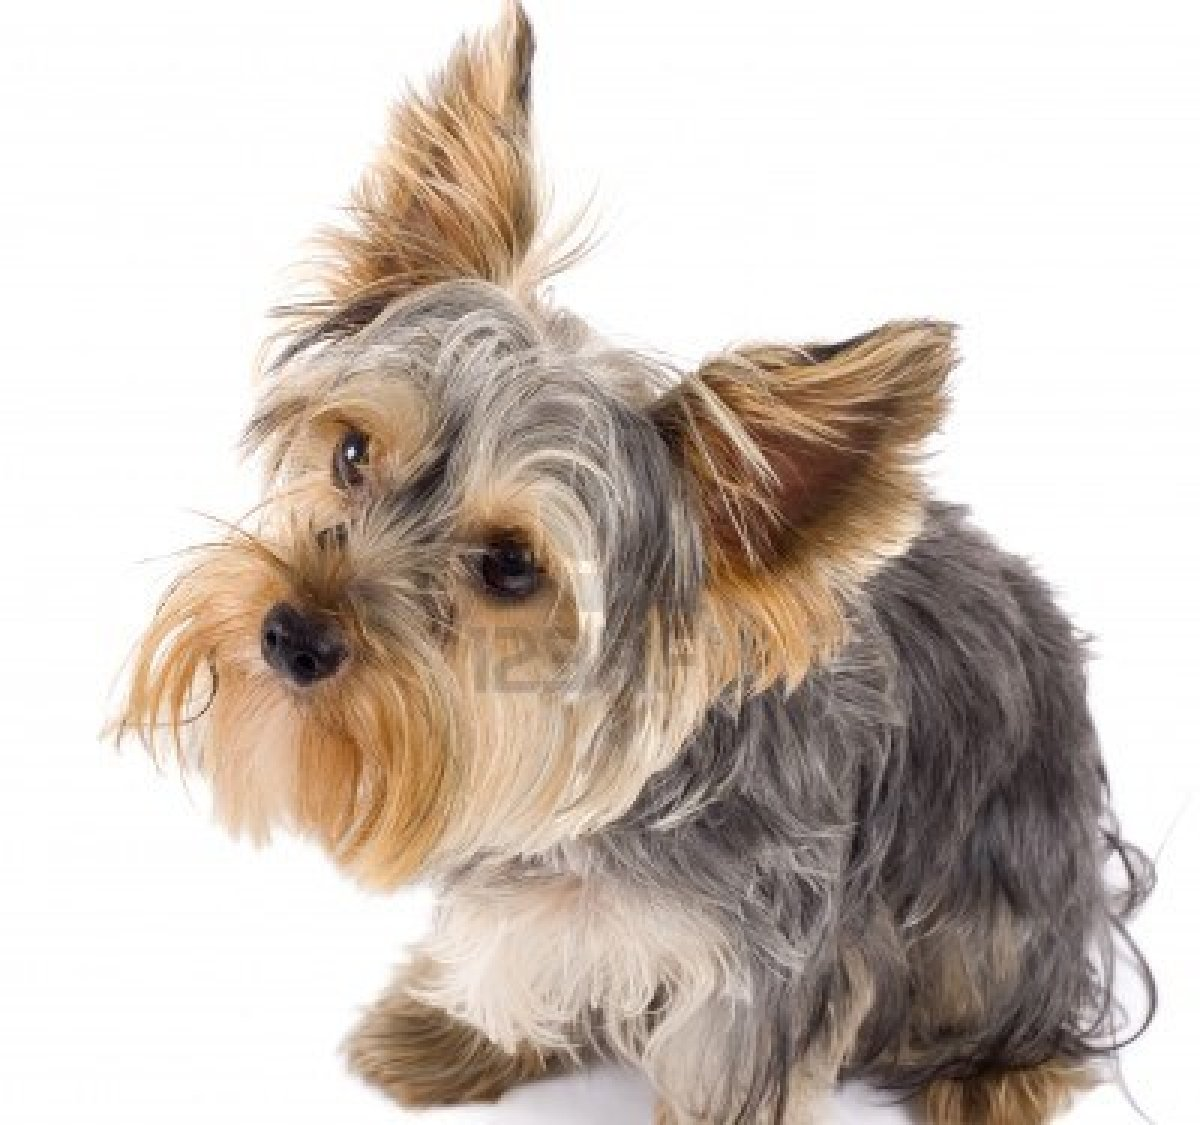 Black And White Yorkie Dogs - newhairstylesformen2014.com